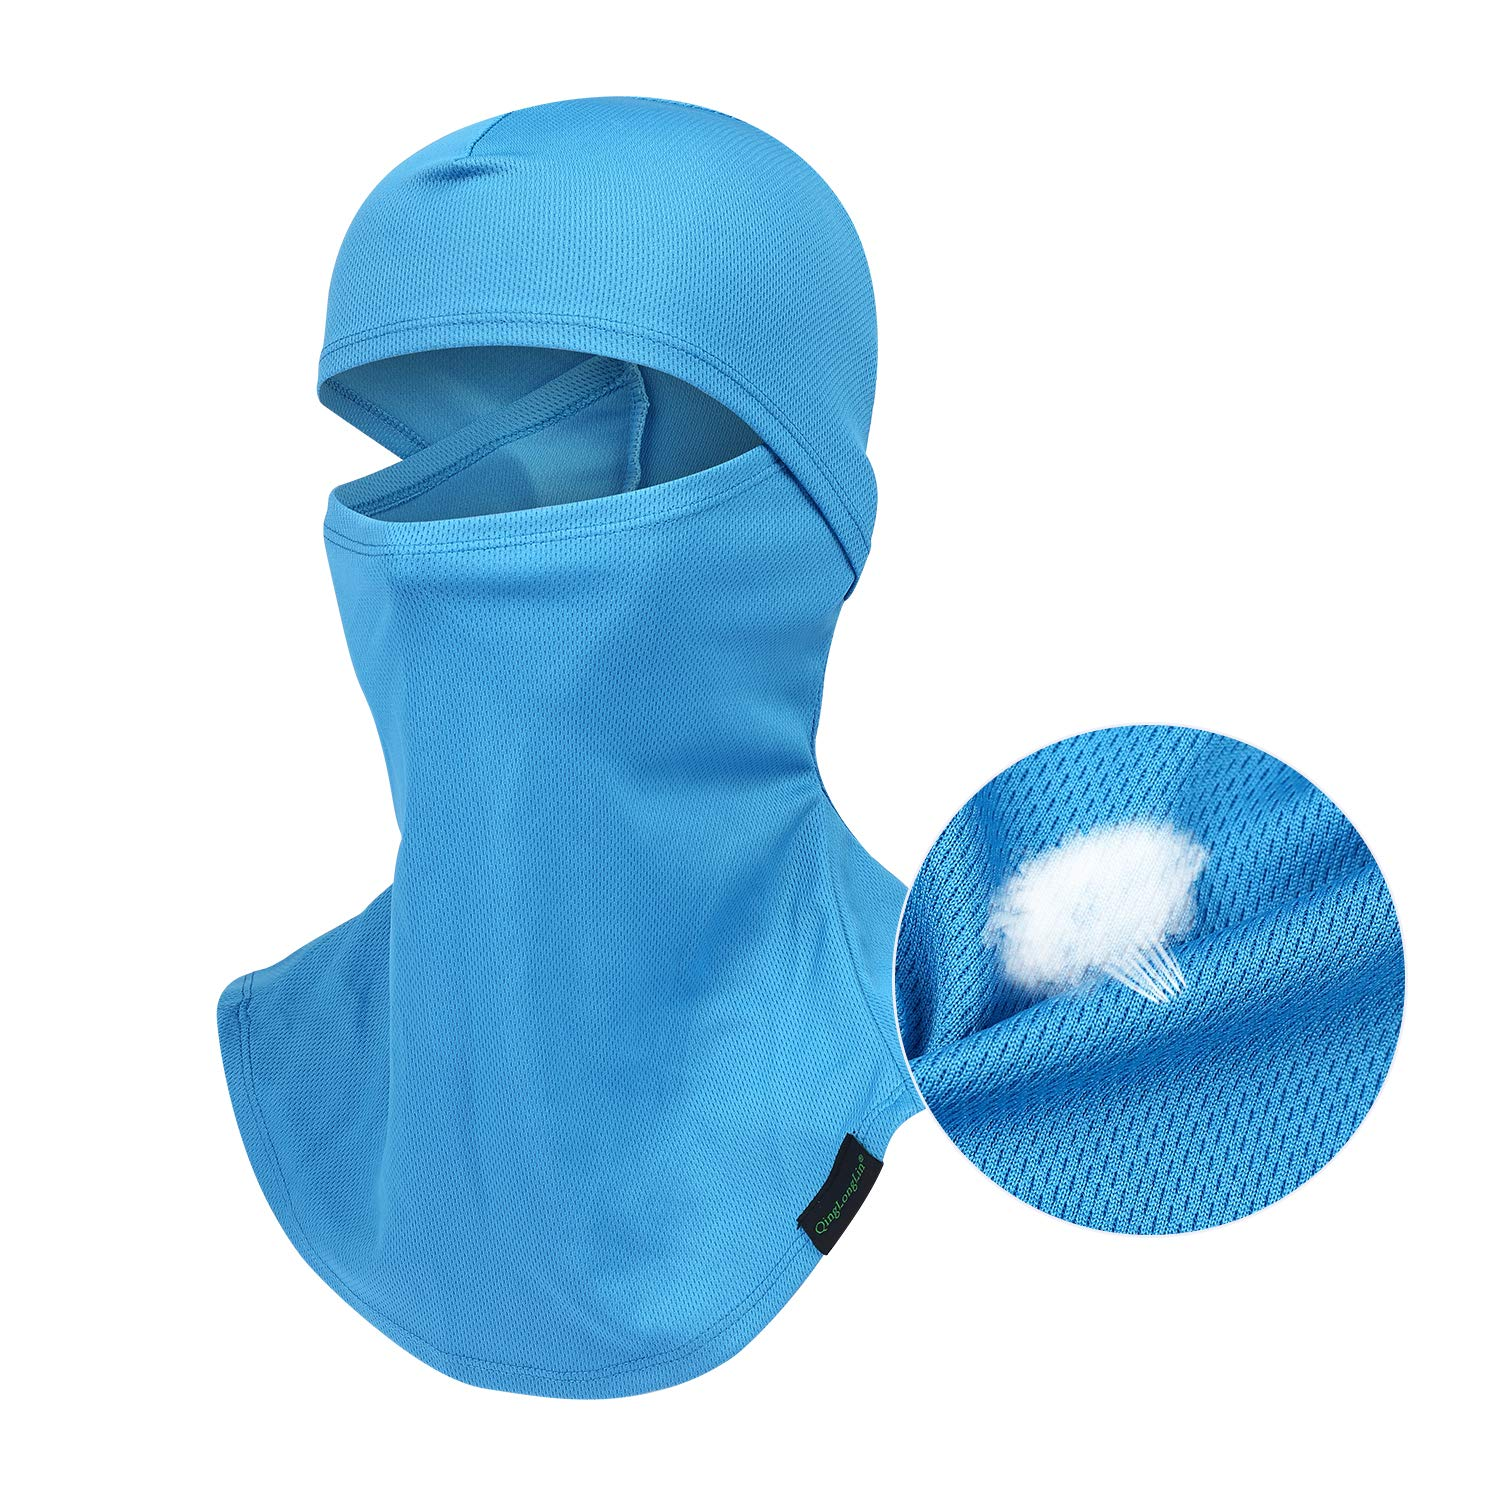 Qinglonglin Balaclava Full Face Mask, Winter Face Masks